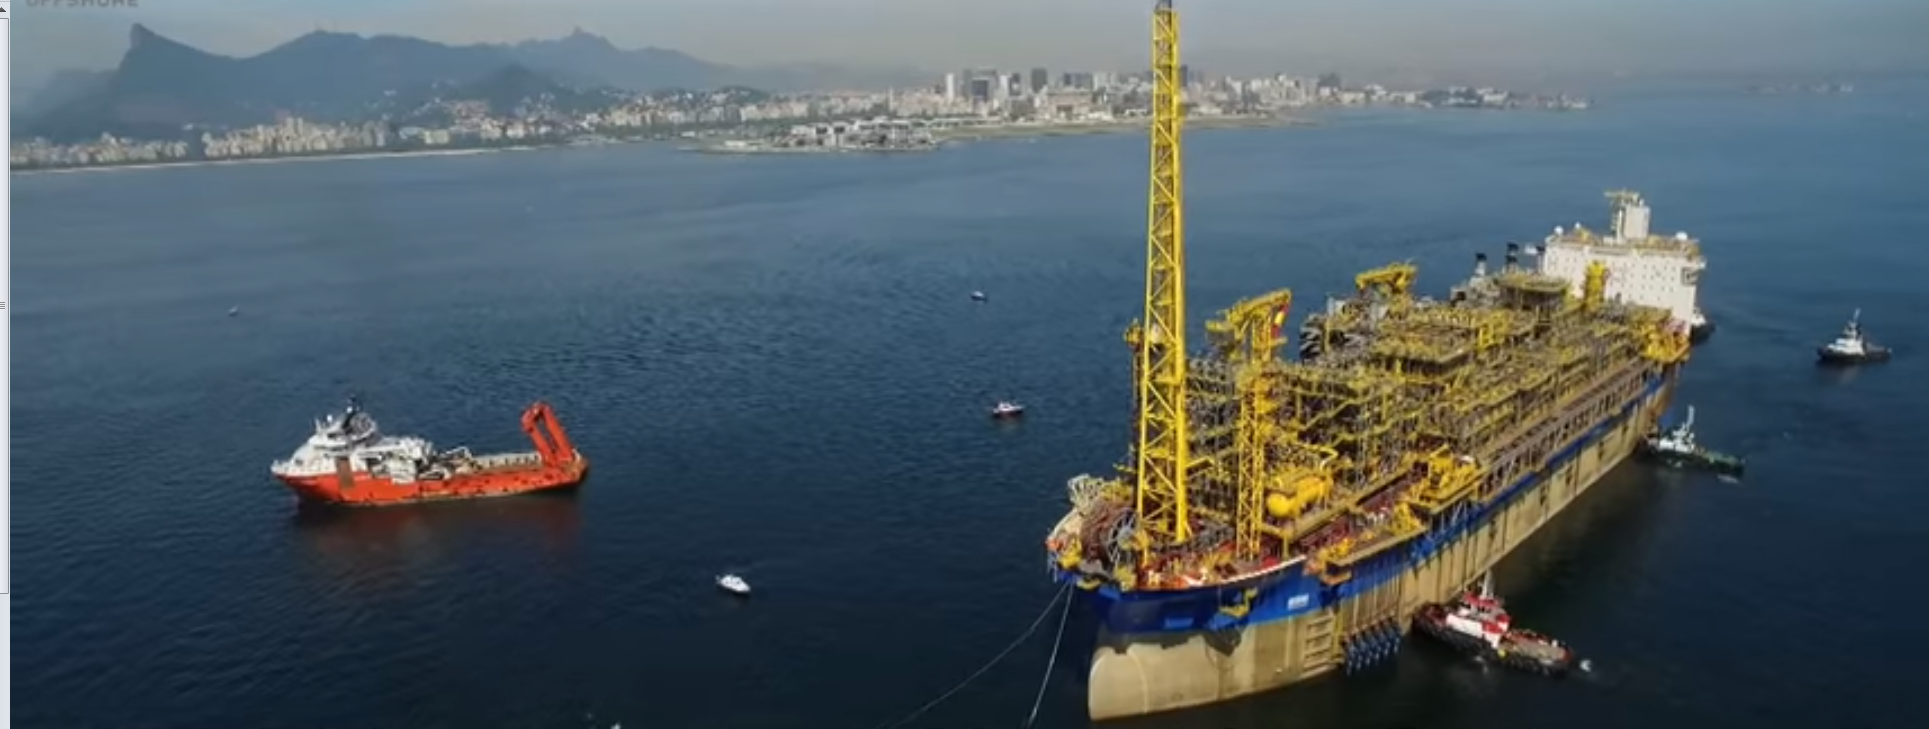 SBM Offshore has marked first oil